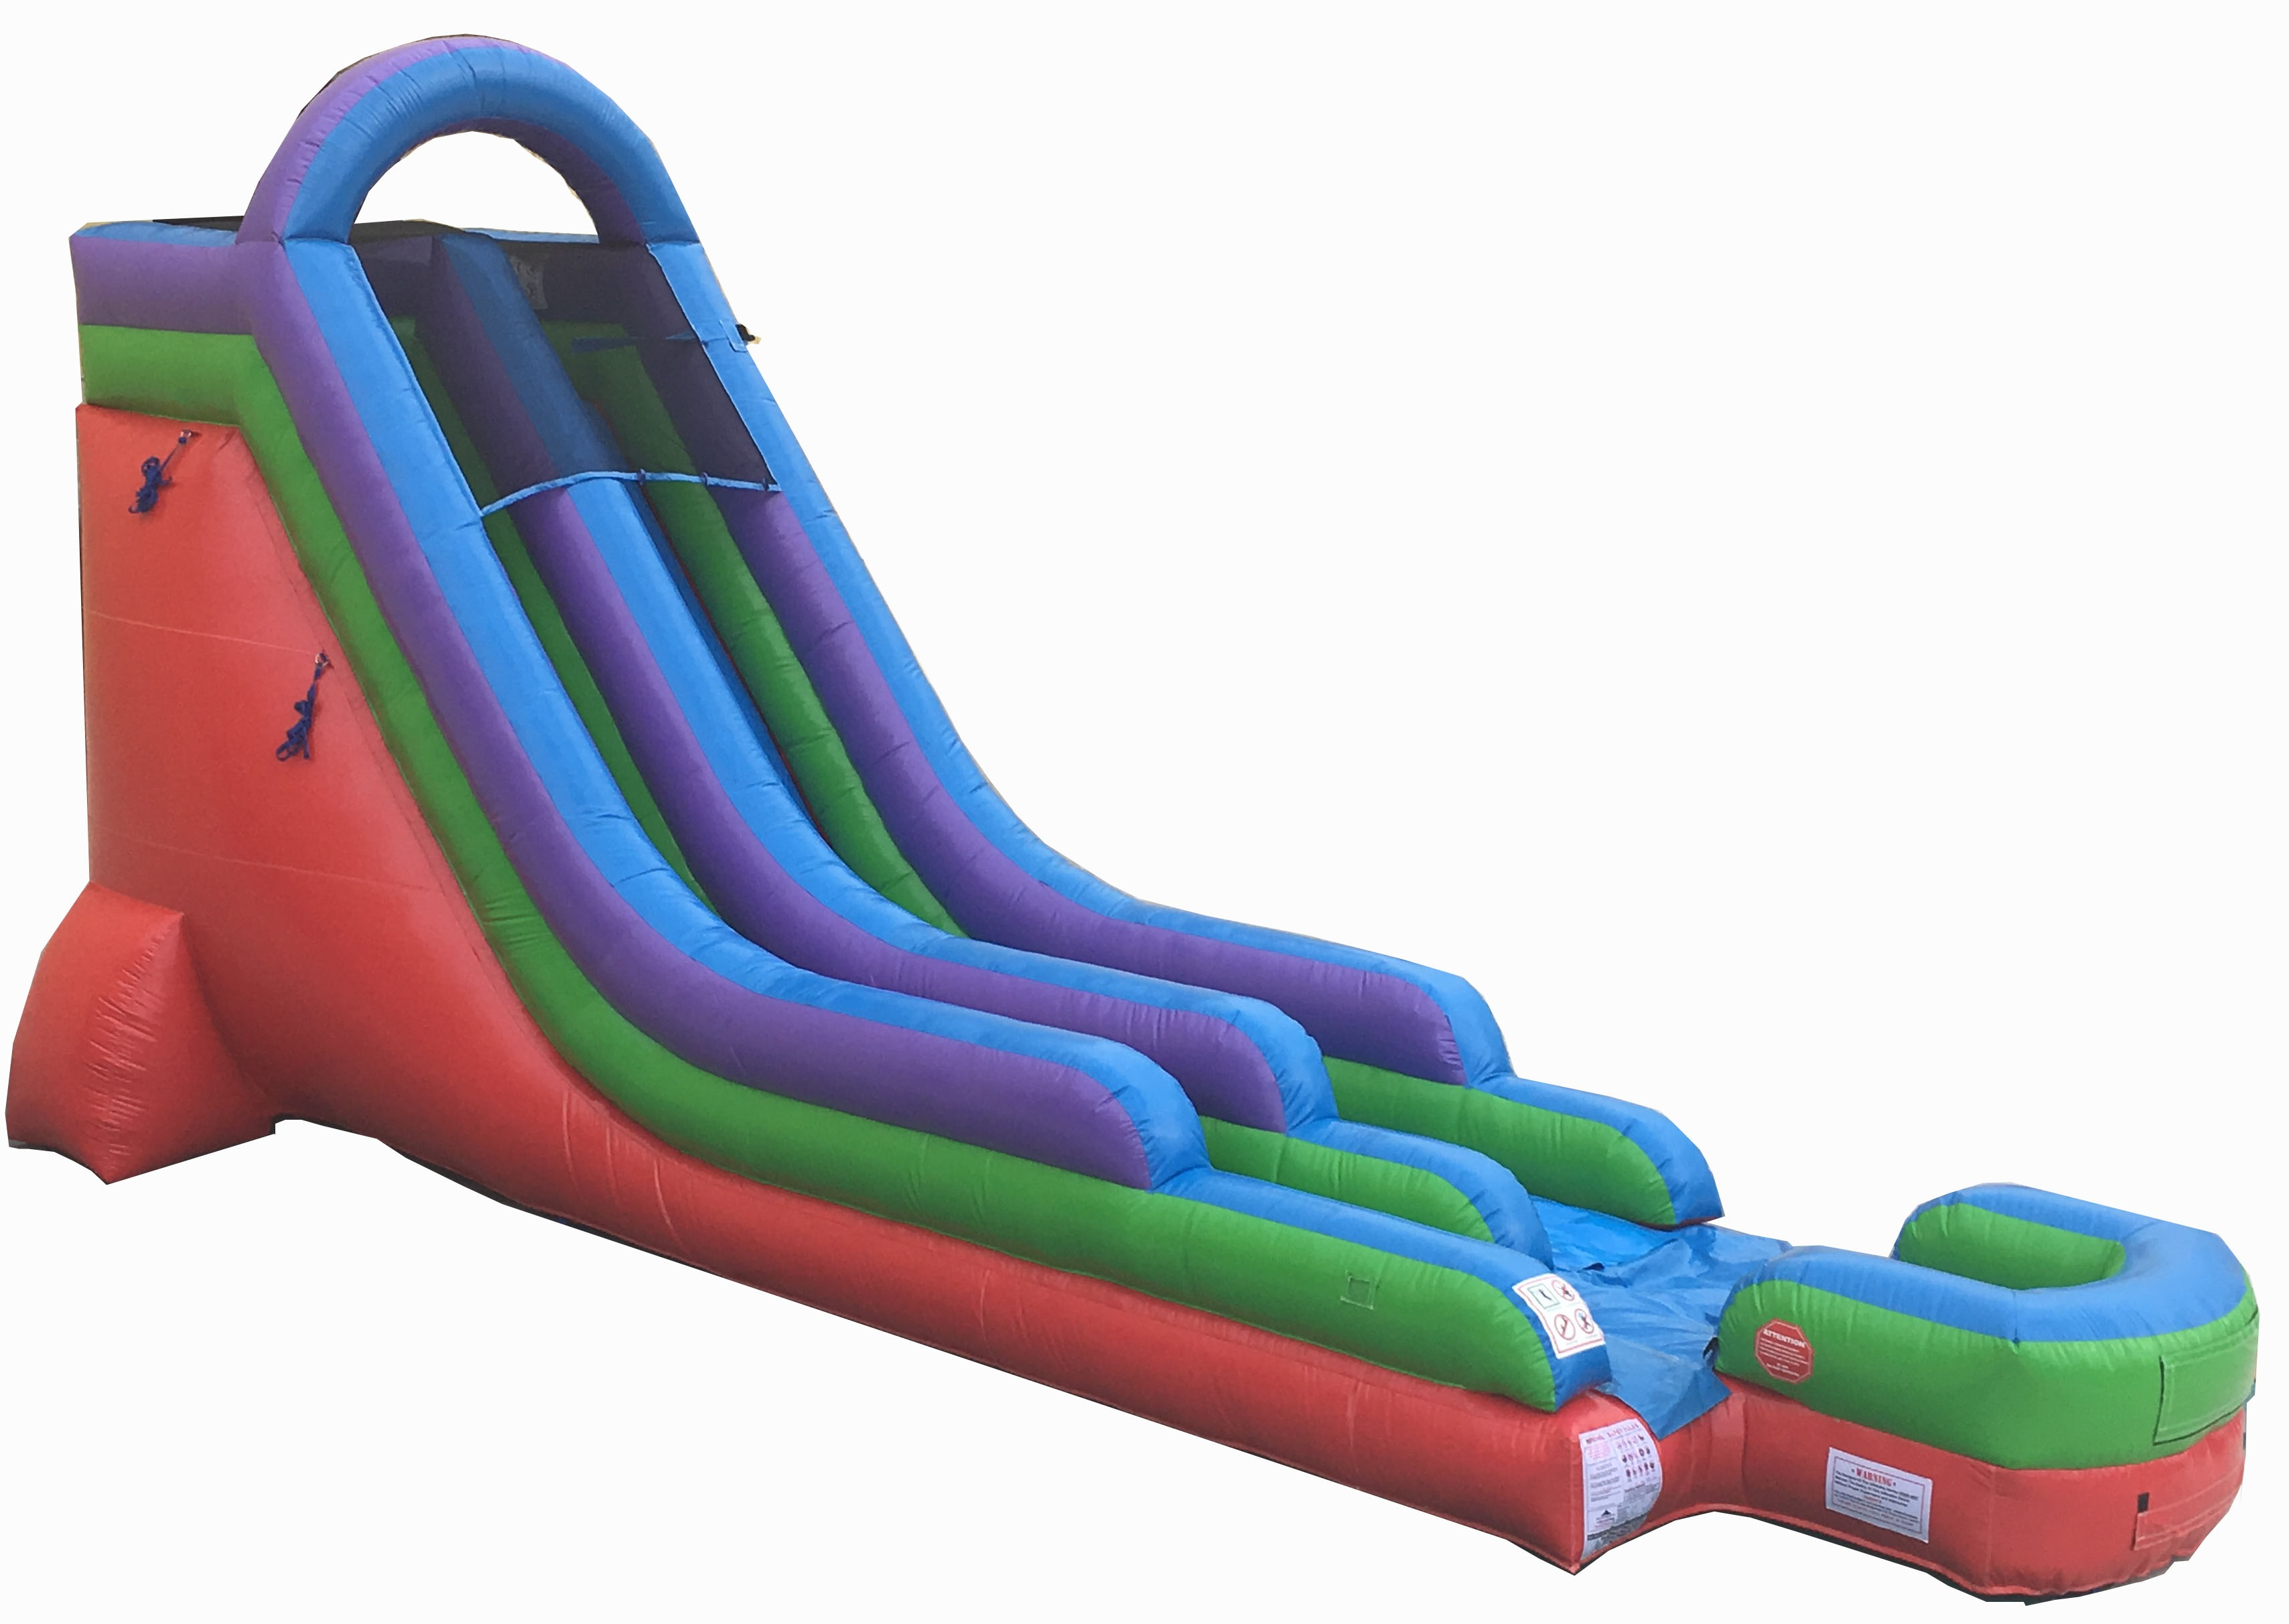 Pogo 18' Retro Commercial Kids Jumper Inflatable Waterslide with Blower by Pogo Bounce House